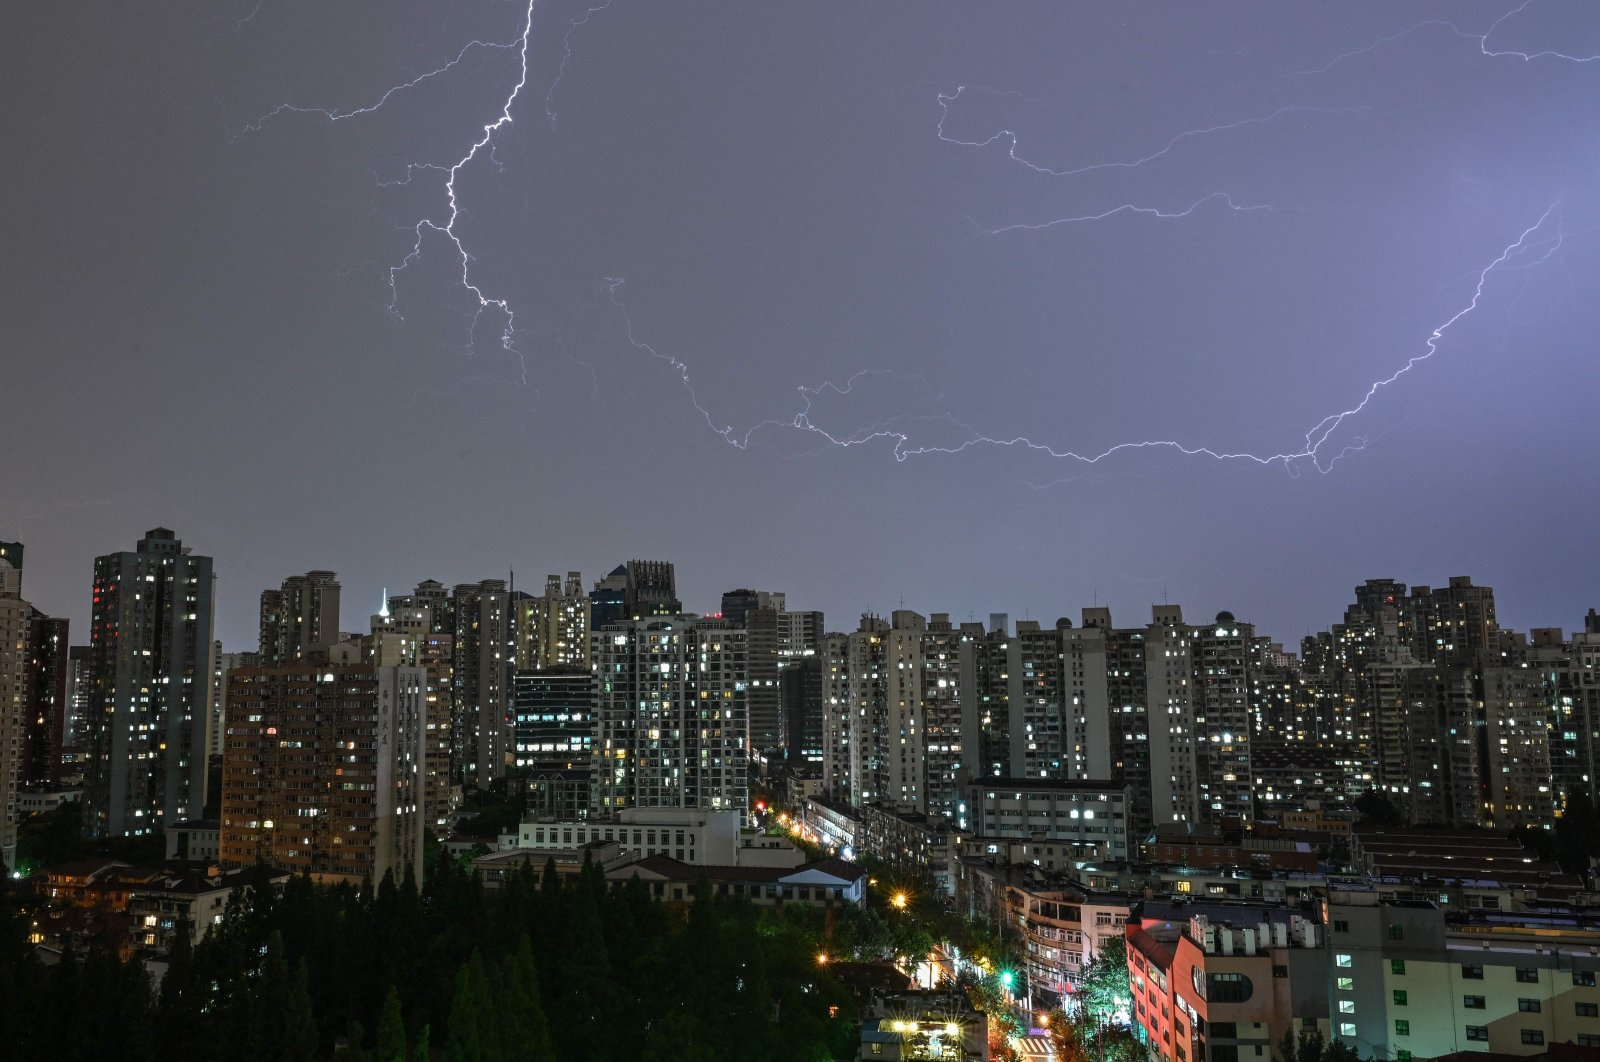 Lightning strikes during a thunderstorm over Shanghai, China, July 5, 2021. (AFP Photo)